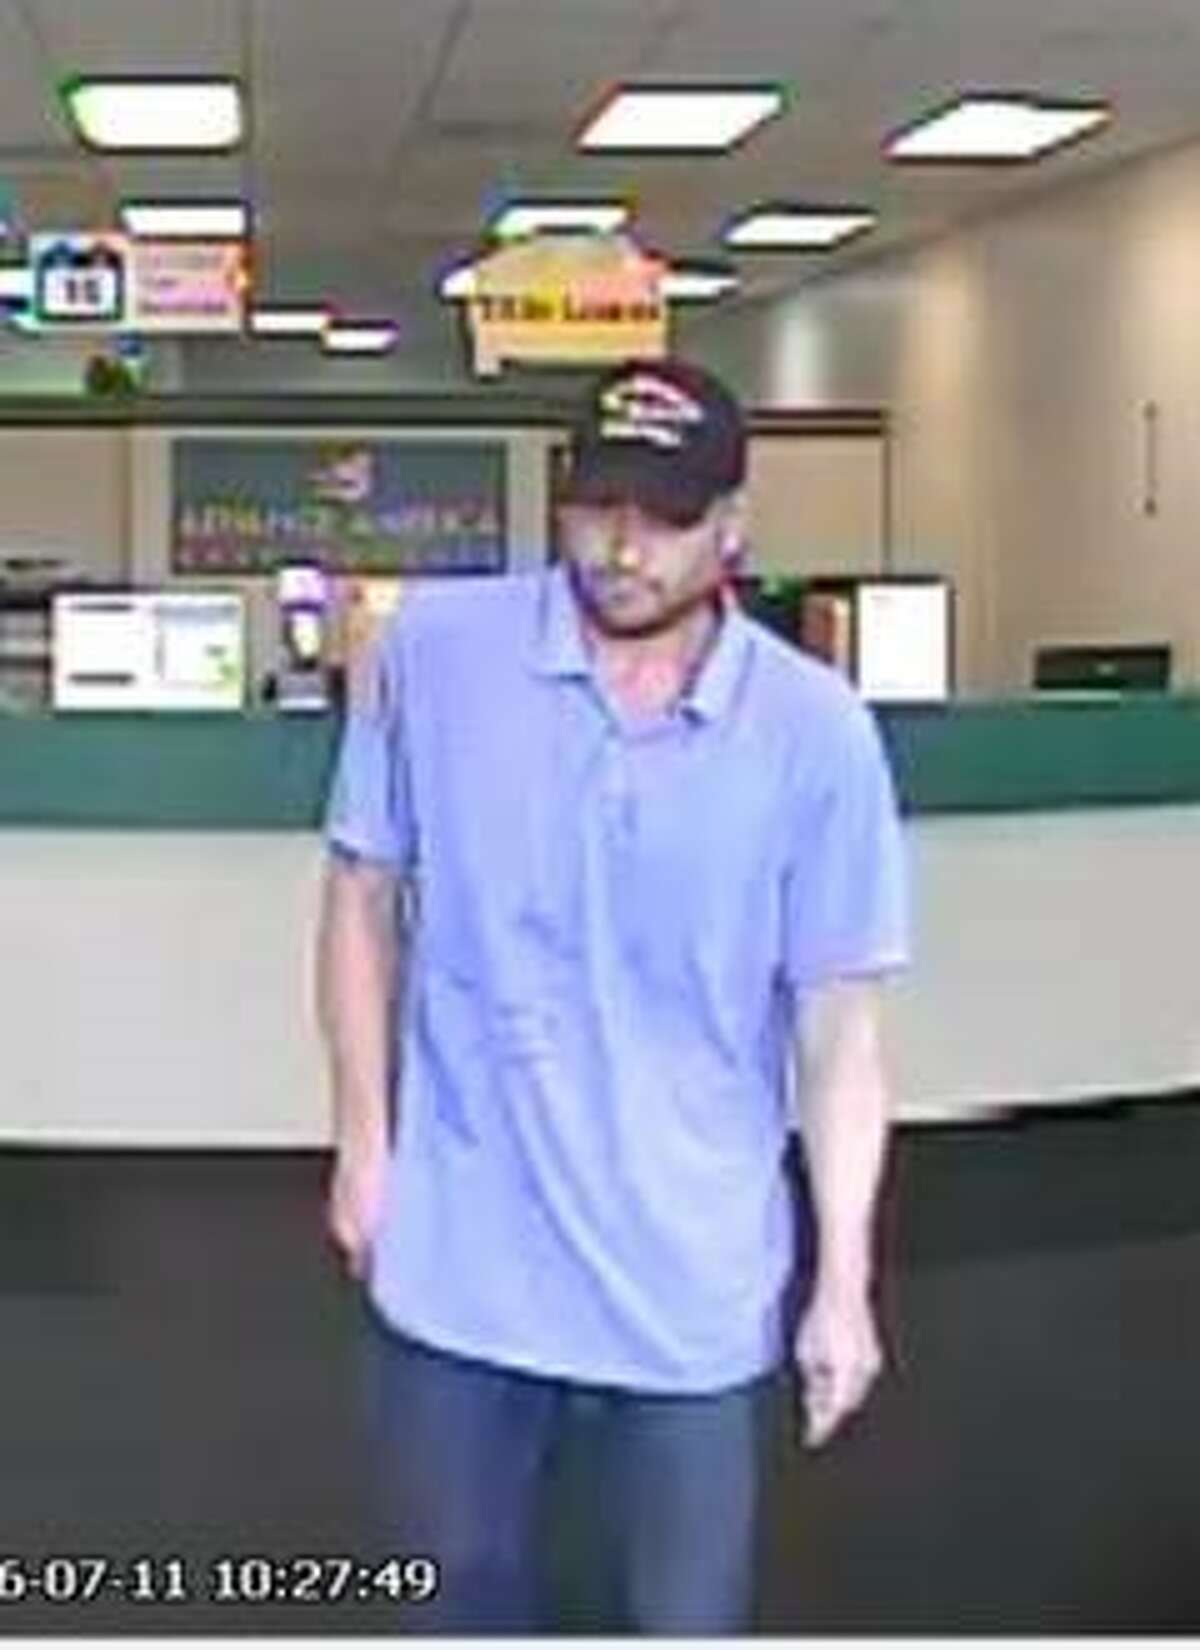 Surveillance photograph of a suspect in a robbery about 10:30 a.m. Monday, July 11, 2016, at an America Cash Advance store at 153 FM 518 in Kemah. (Galveston County Crime Stoppers)